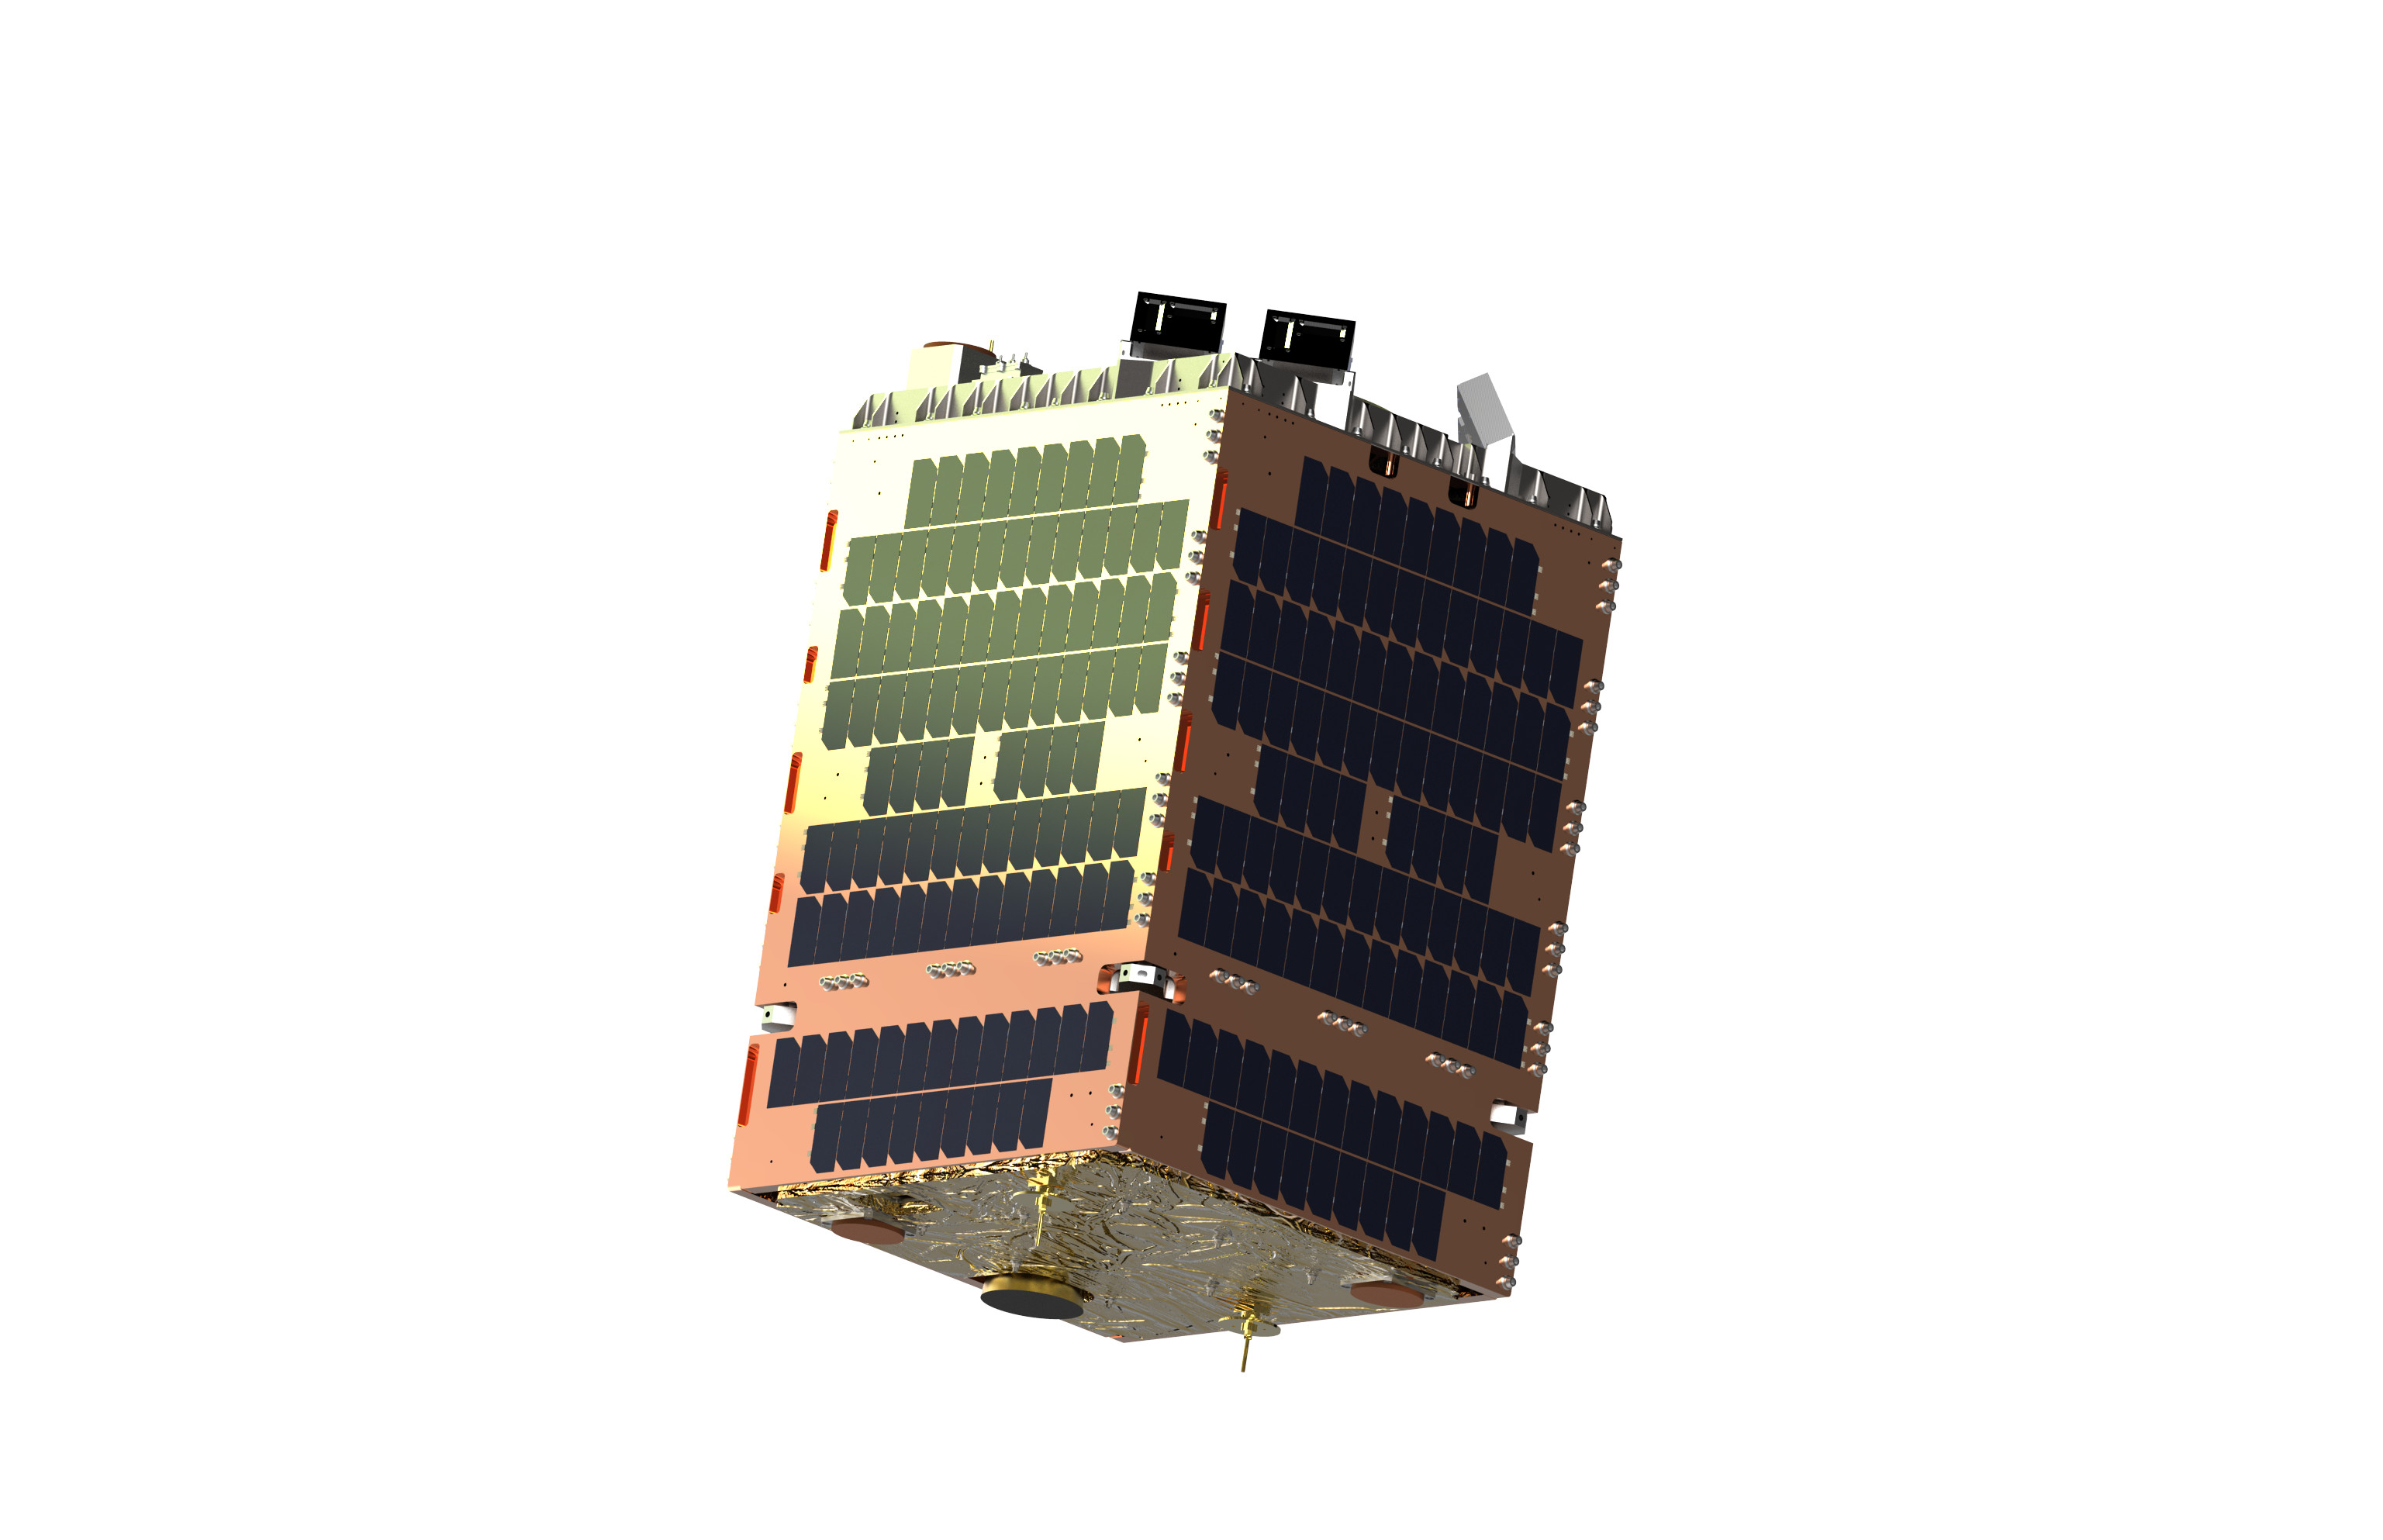 BIU Spacecraft